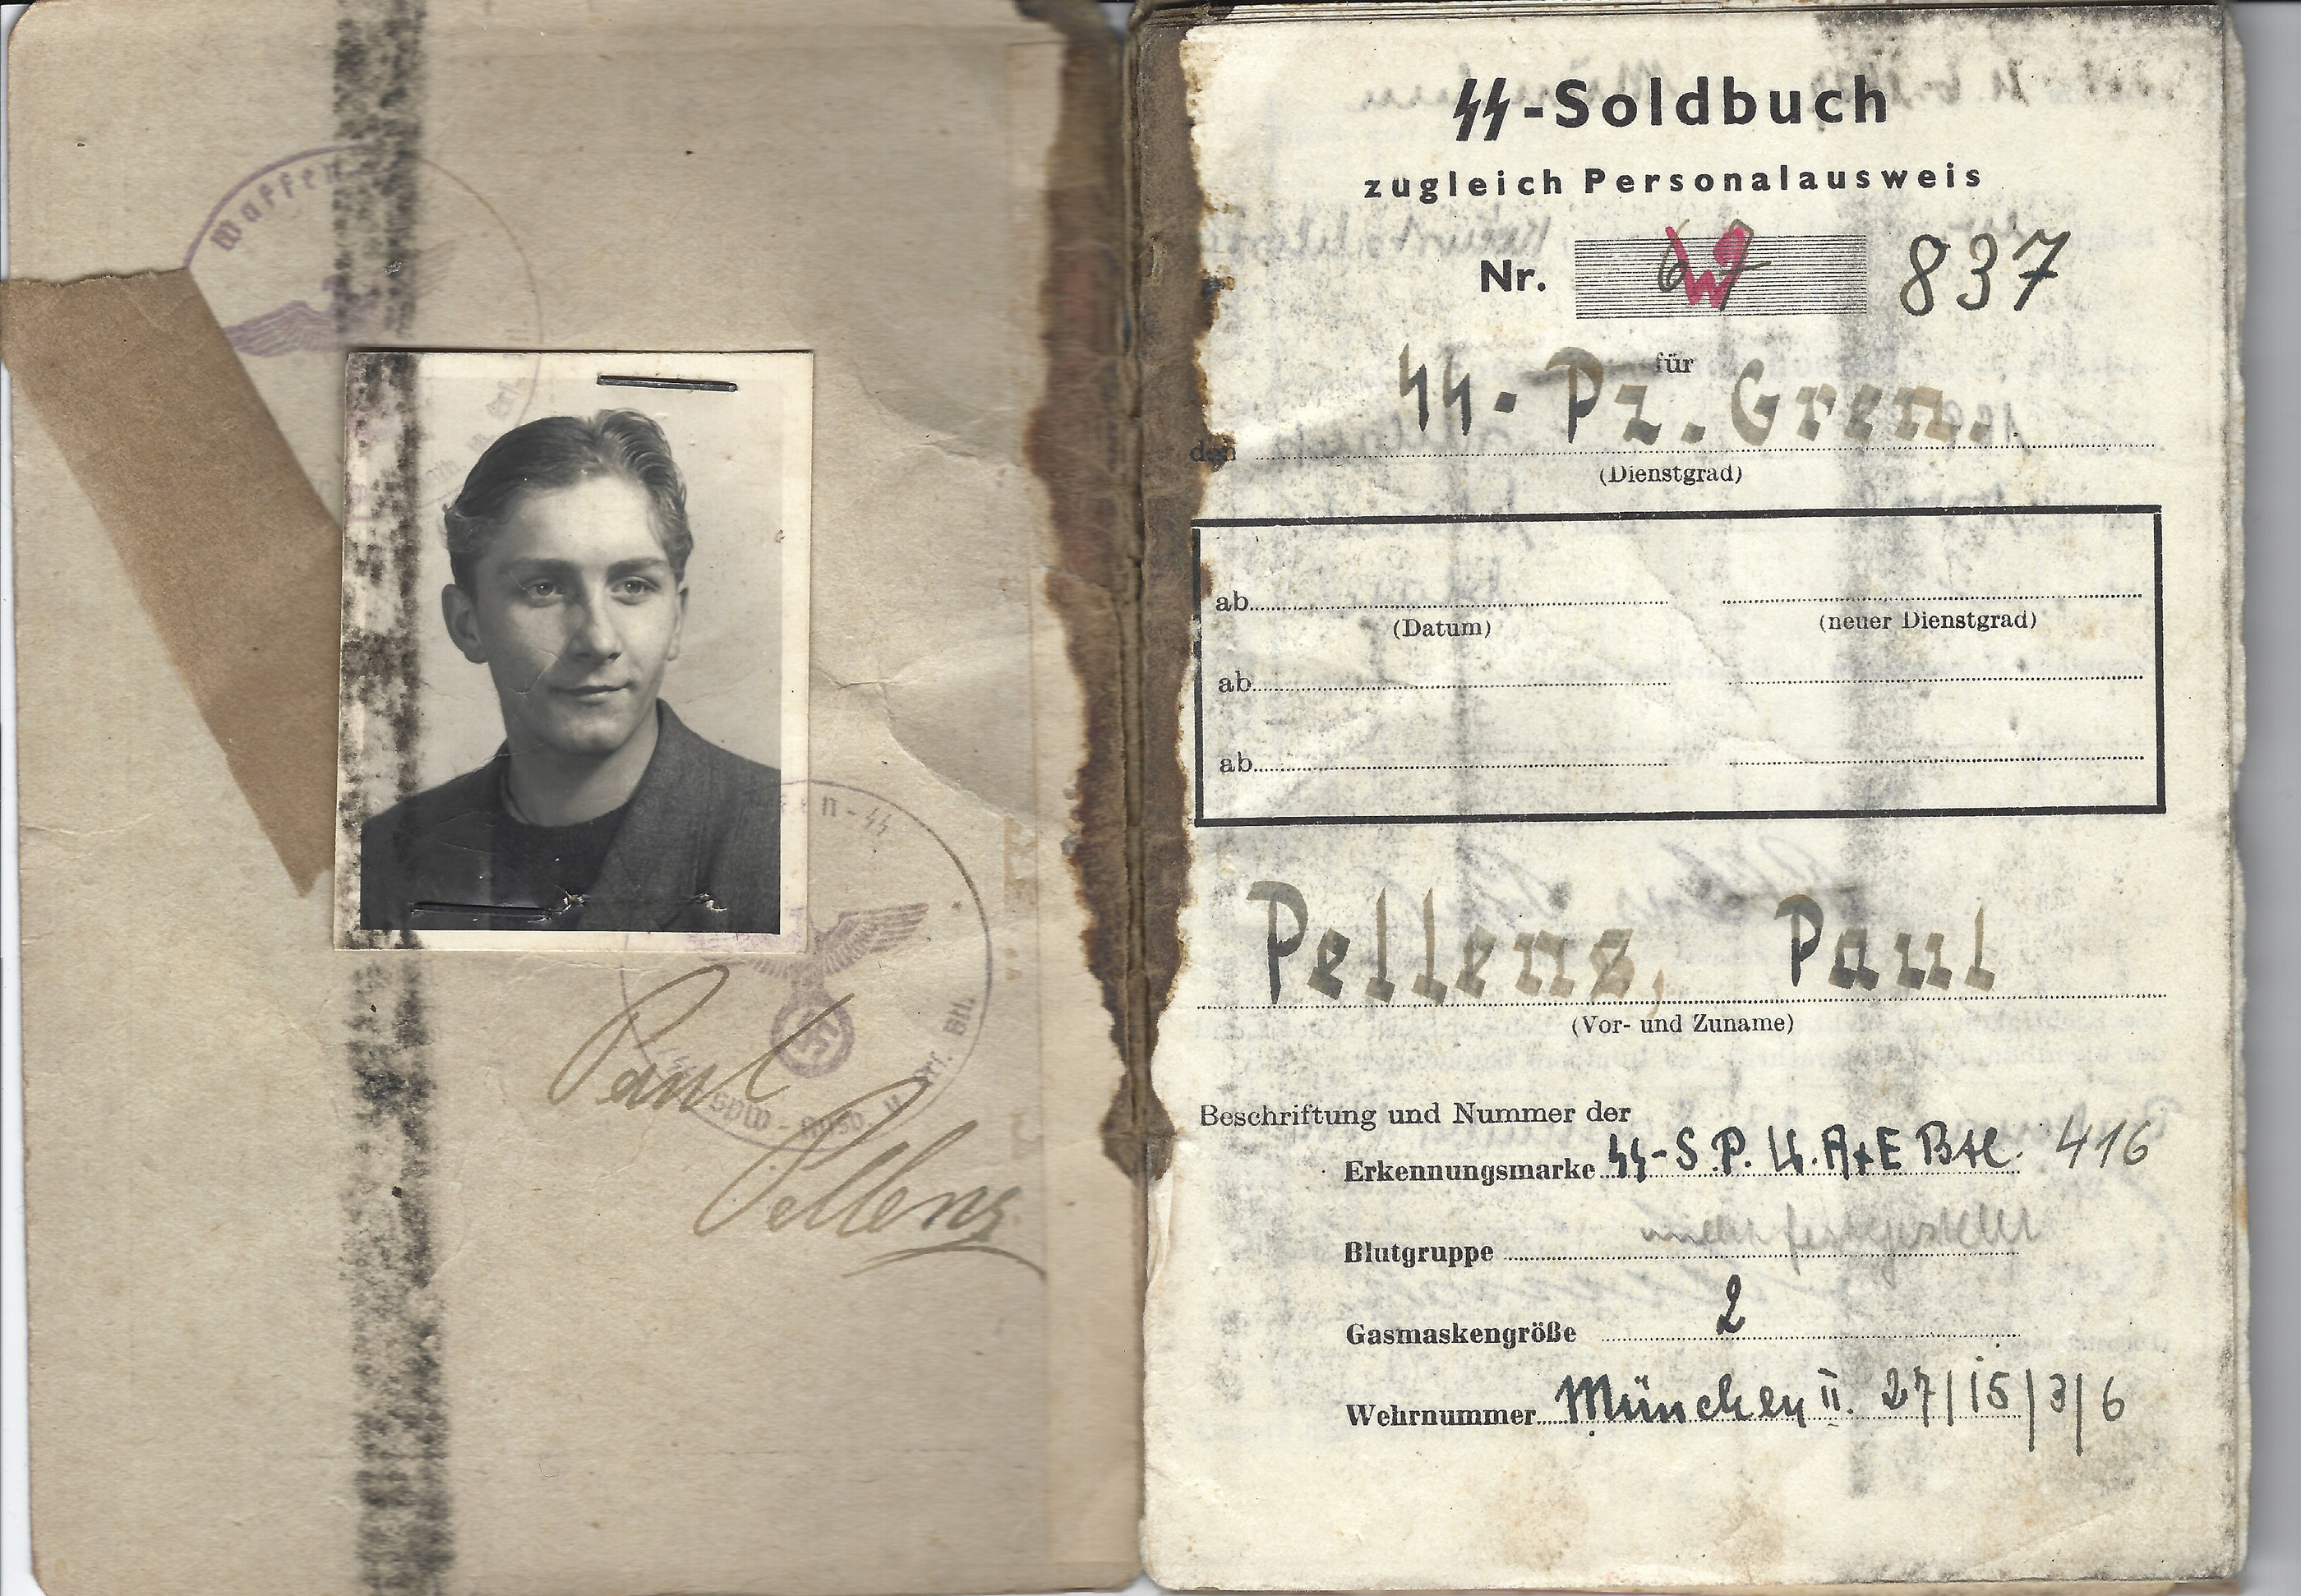 The blood-soaked SS Soldbuch of 18-year-old SS Panzer Grenadier Paul Pellens